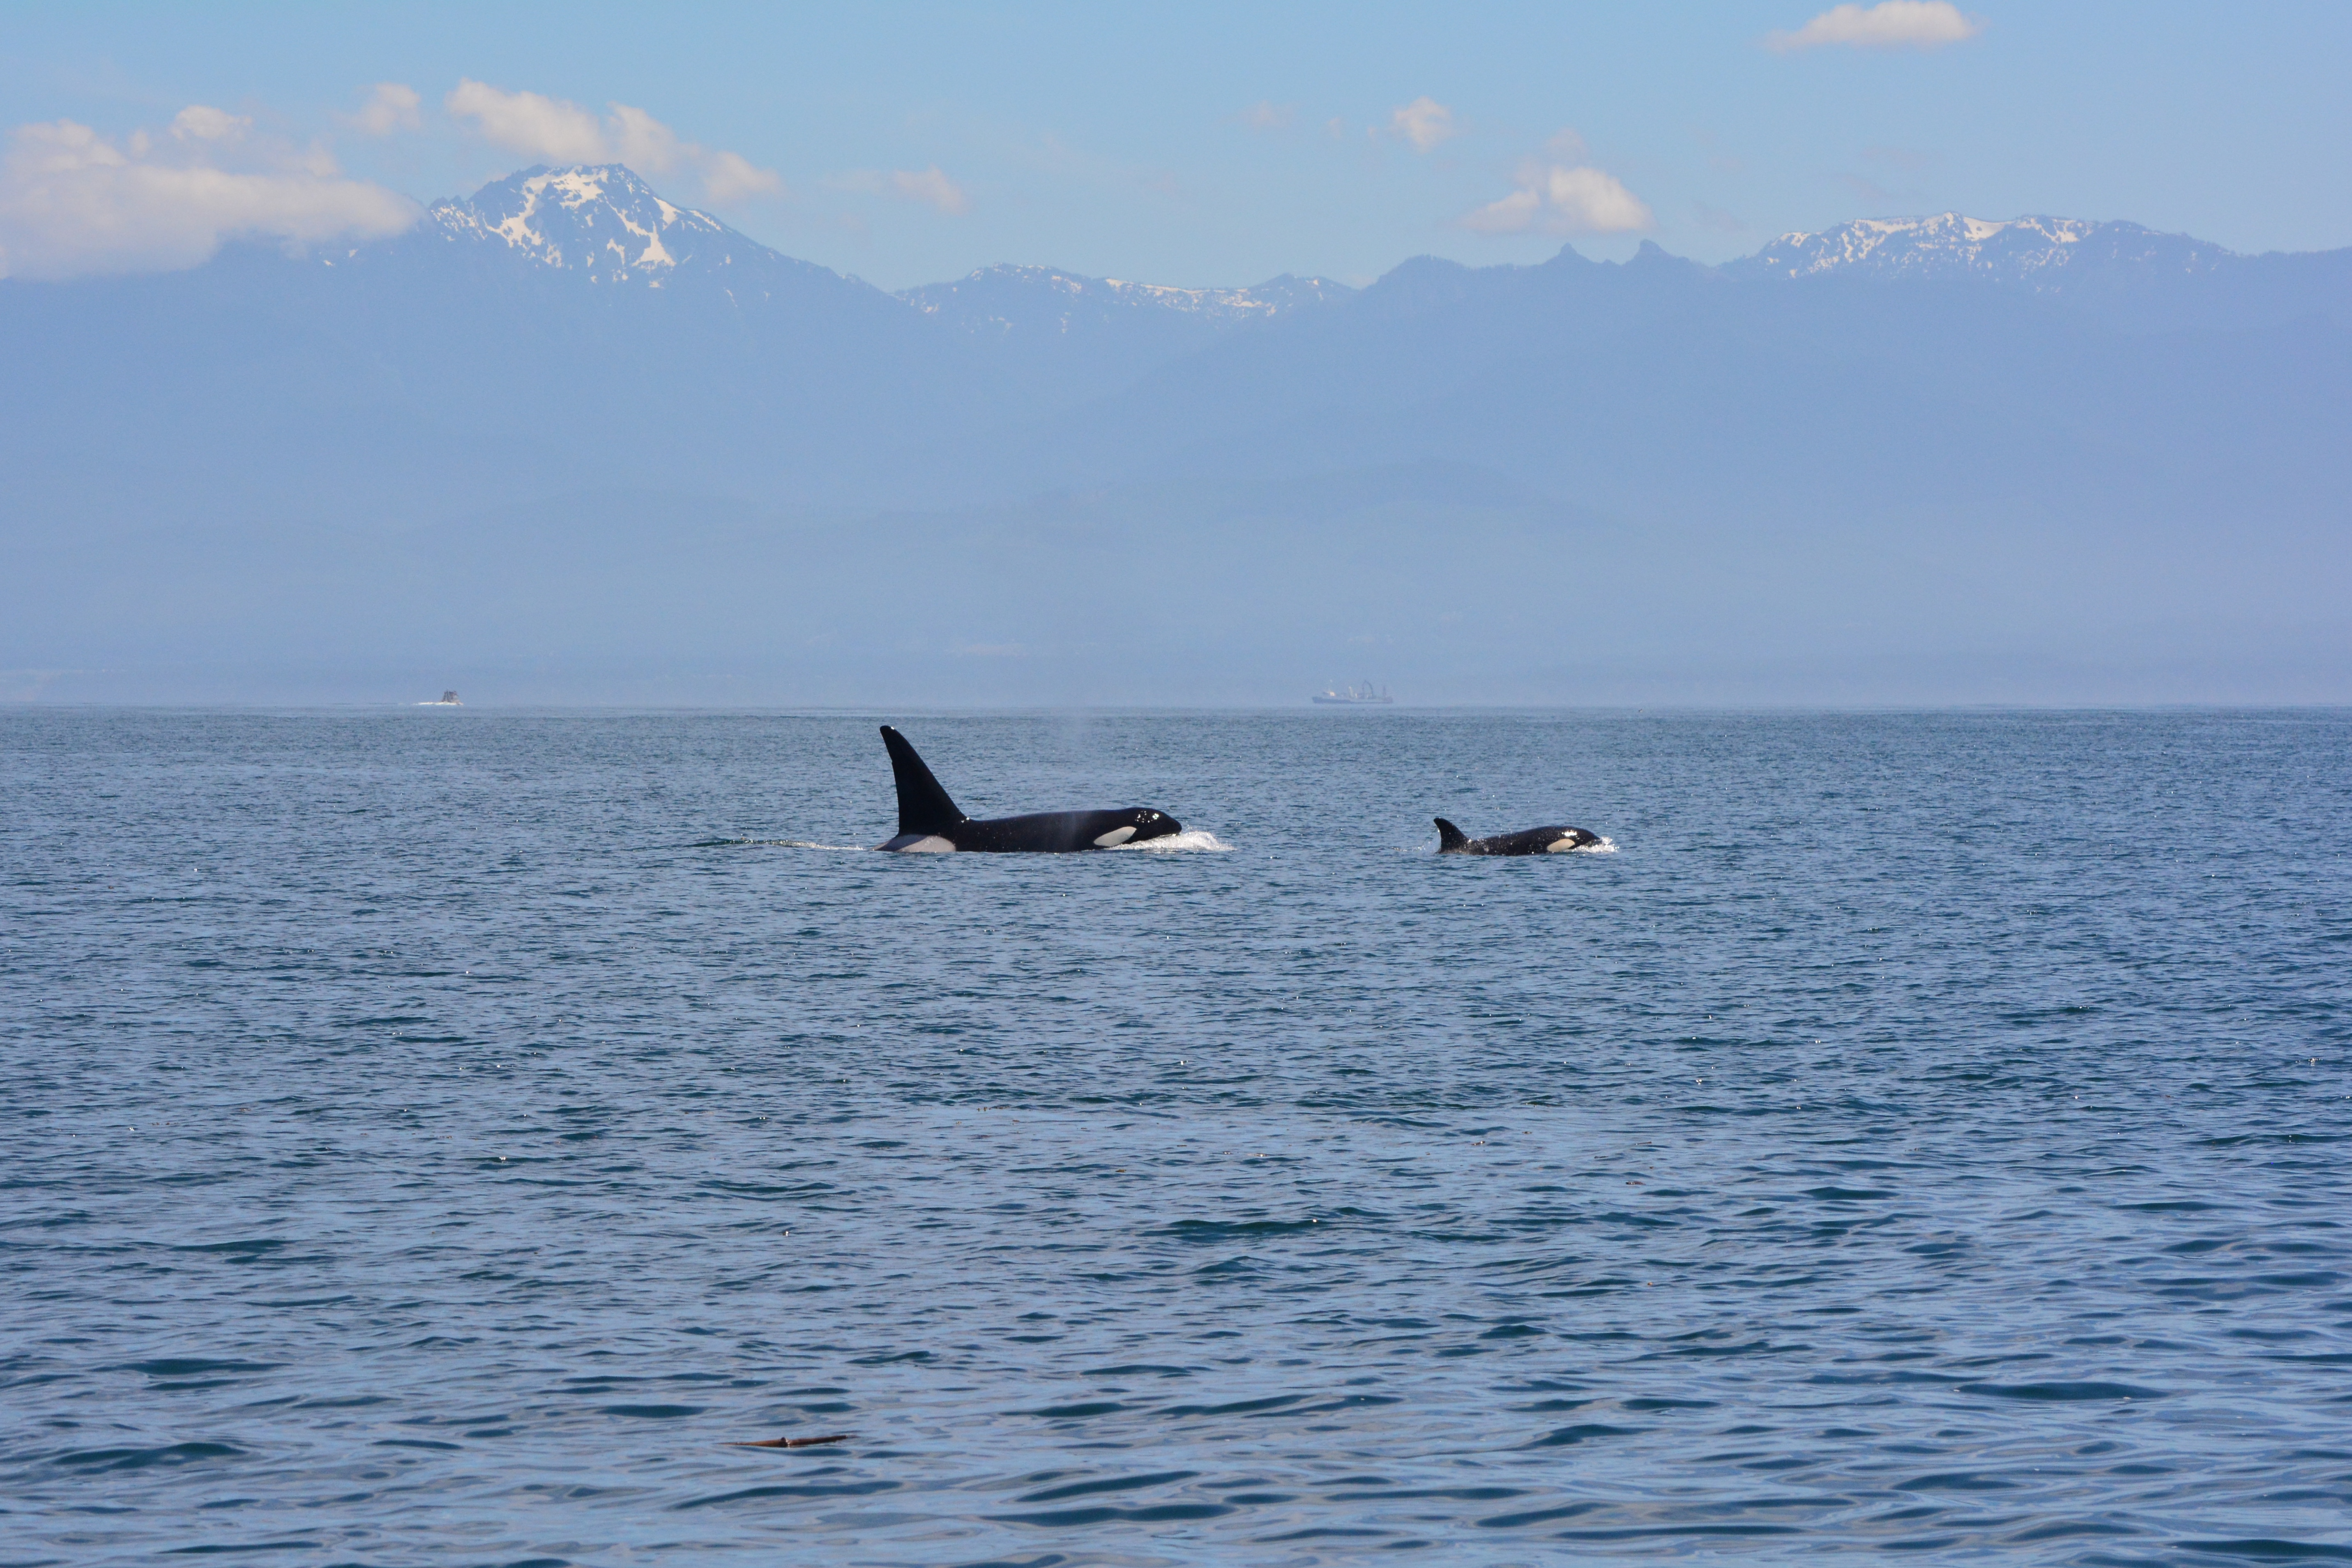 A Grand Tour of the Salish Sea – Residents and Transients Killer Whales on Opposite Corners